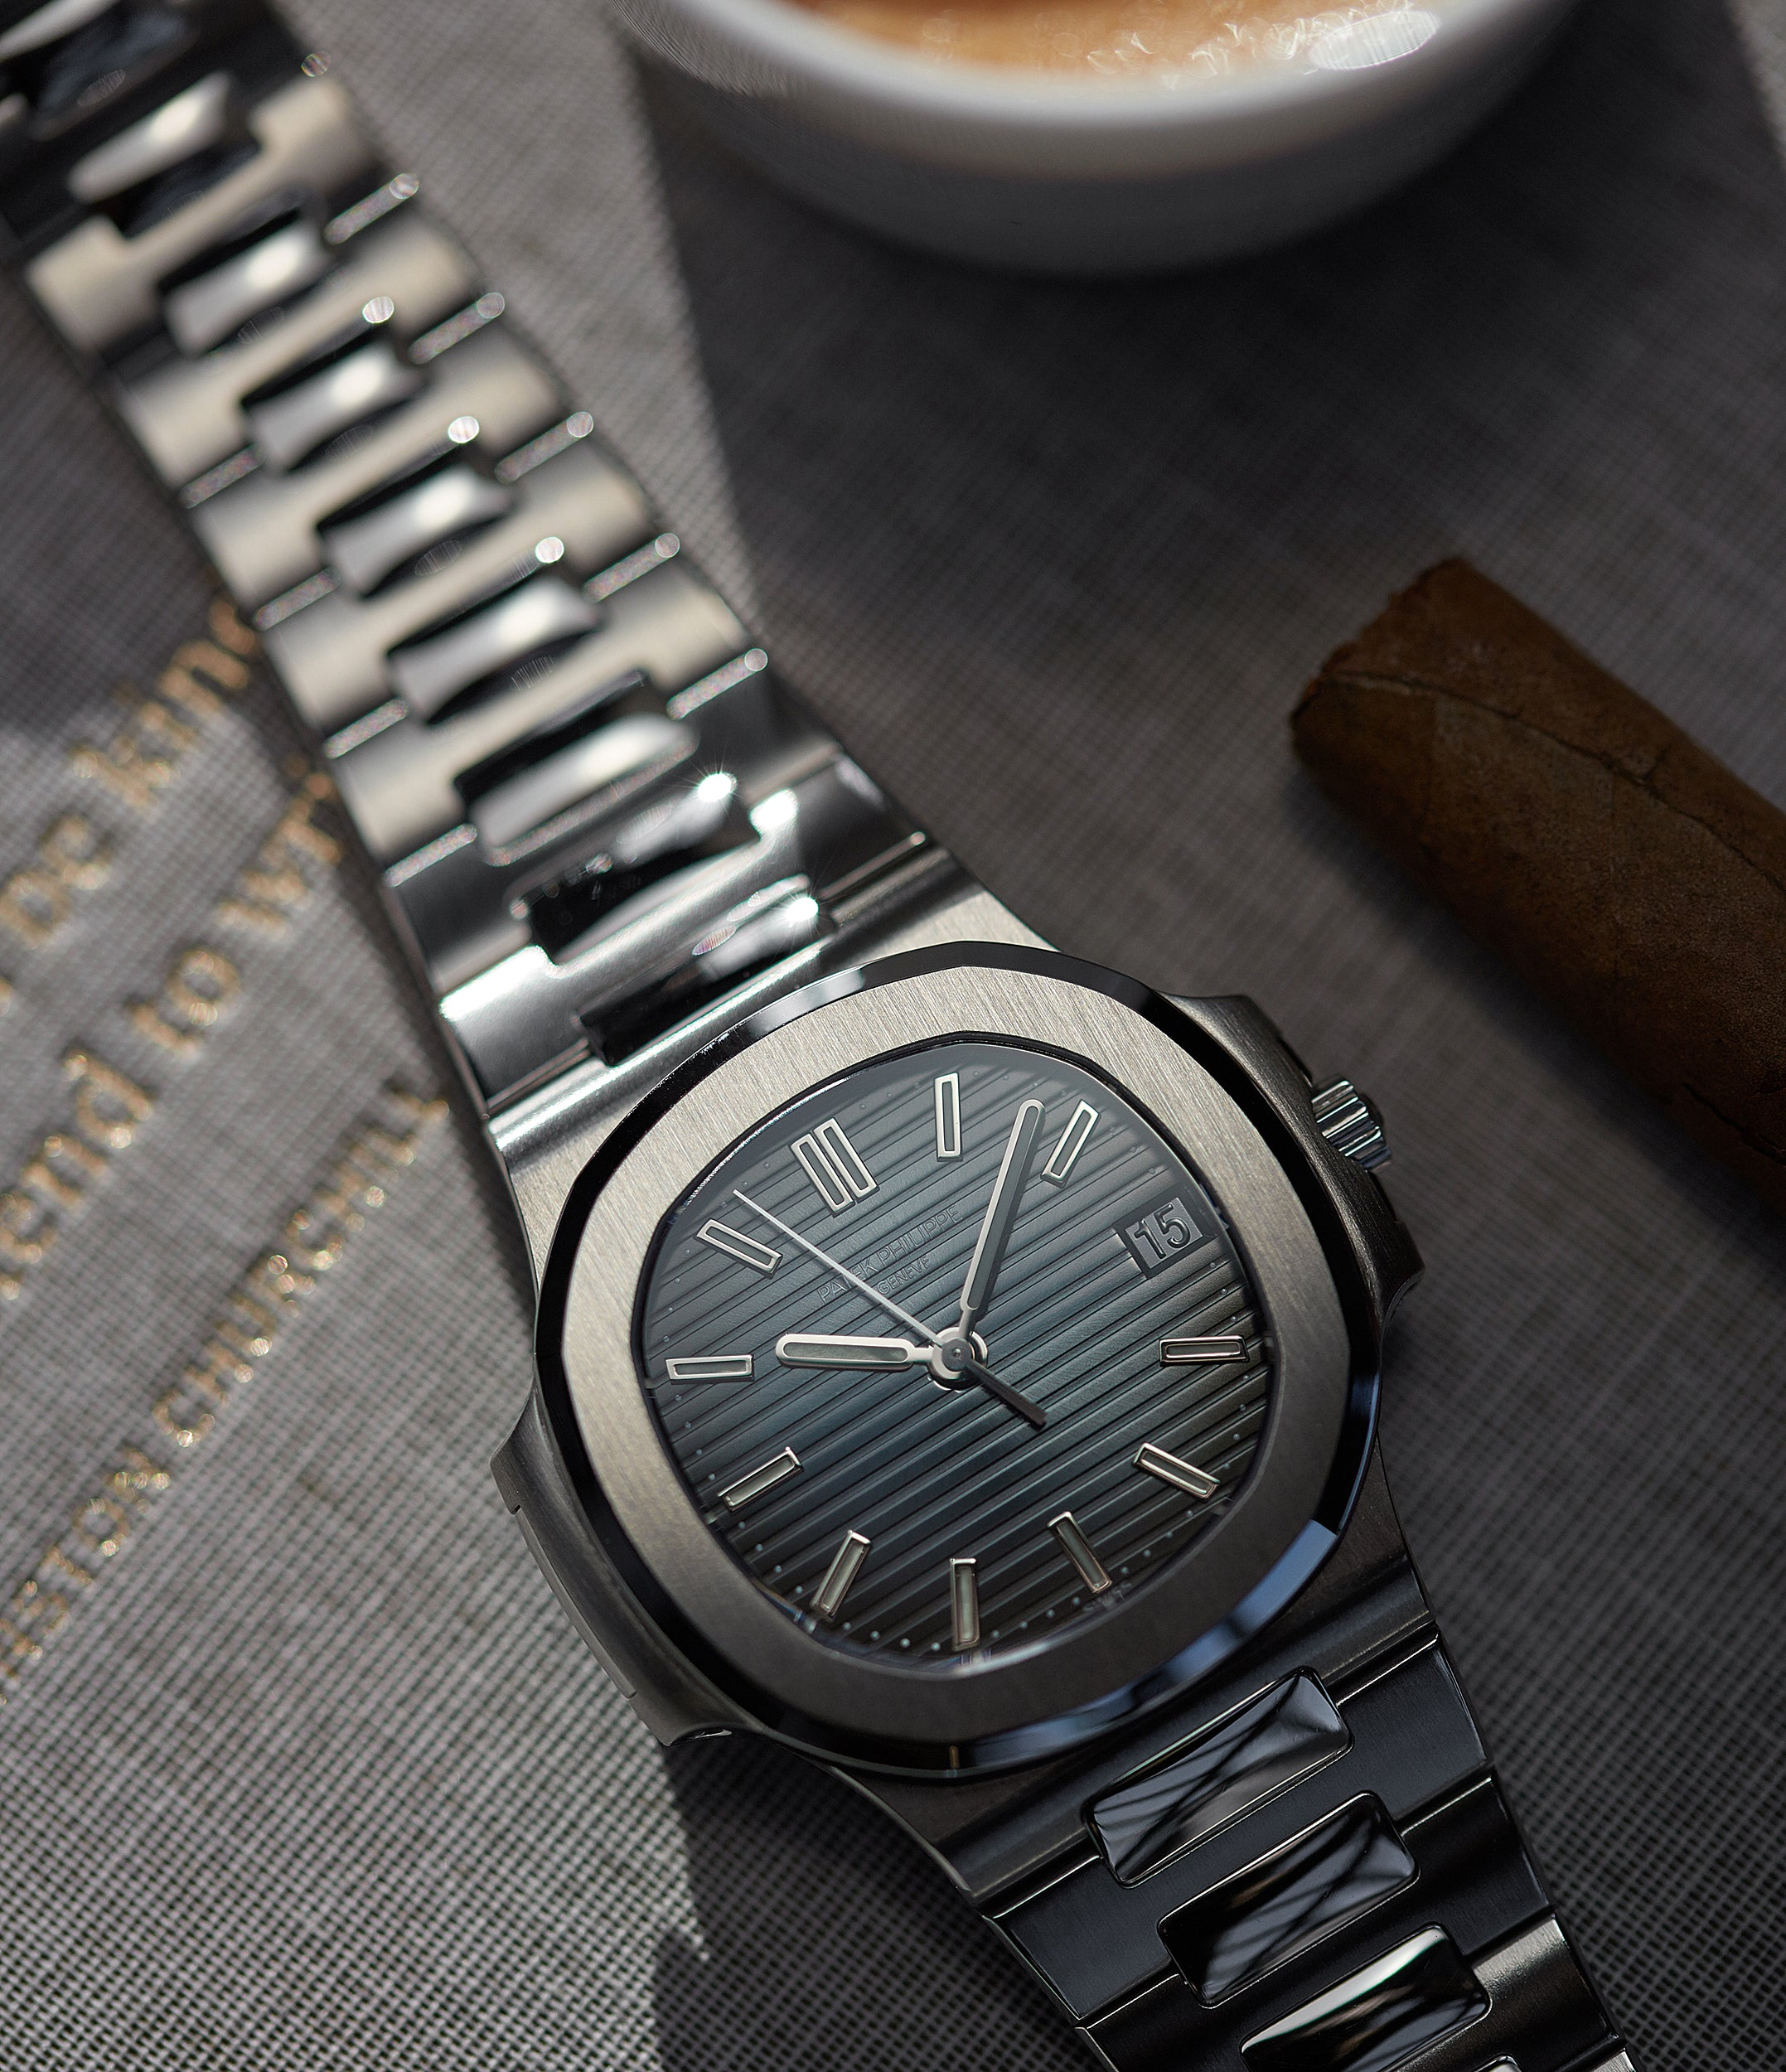 Examples of the reference 5800 were produced for a limited time (approximately 1 year), representing an exceptionally rare and highly-collectible modern Patek Philippe